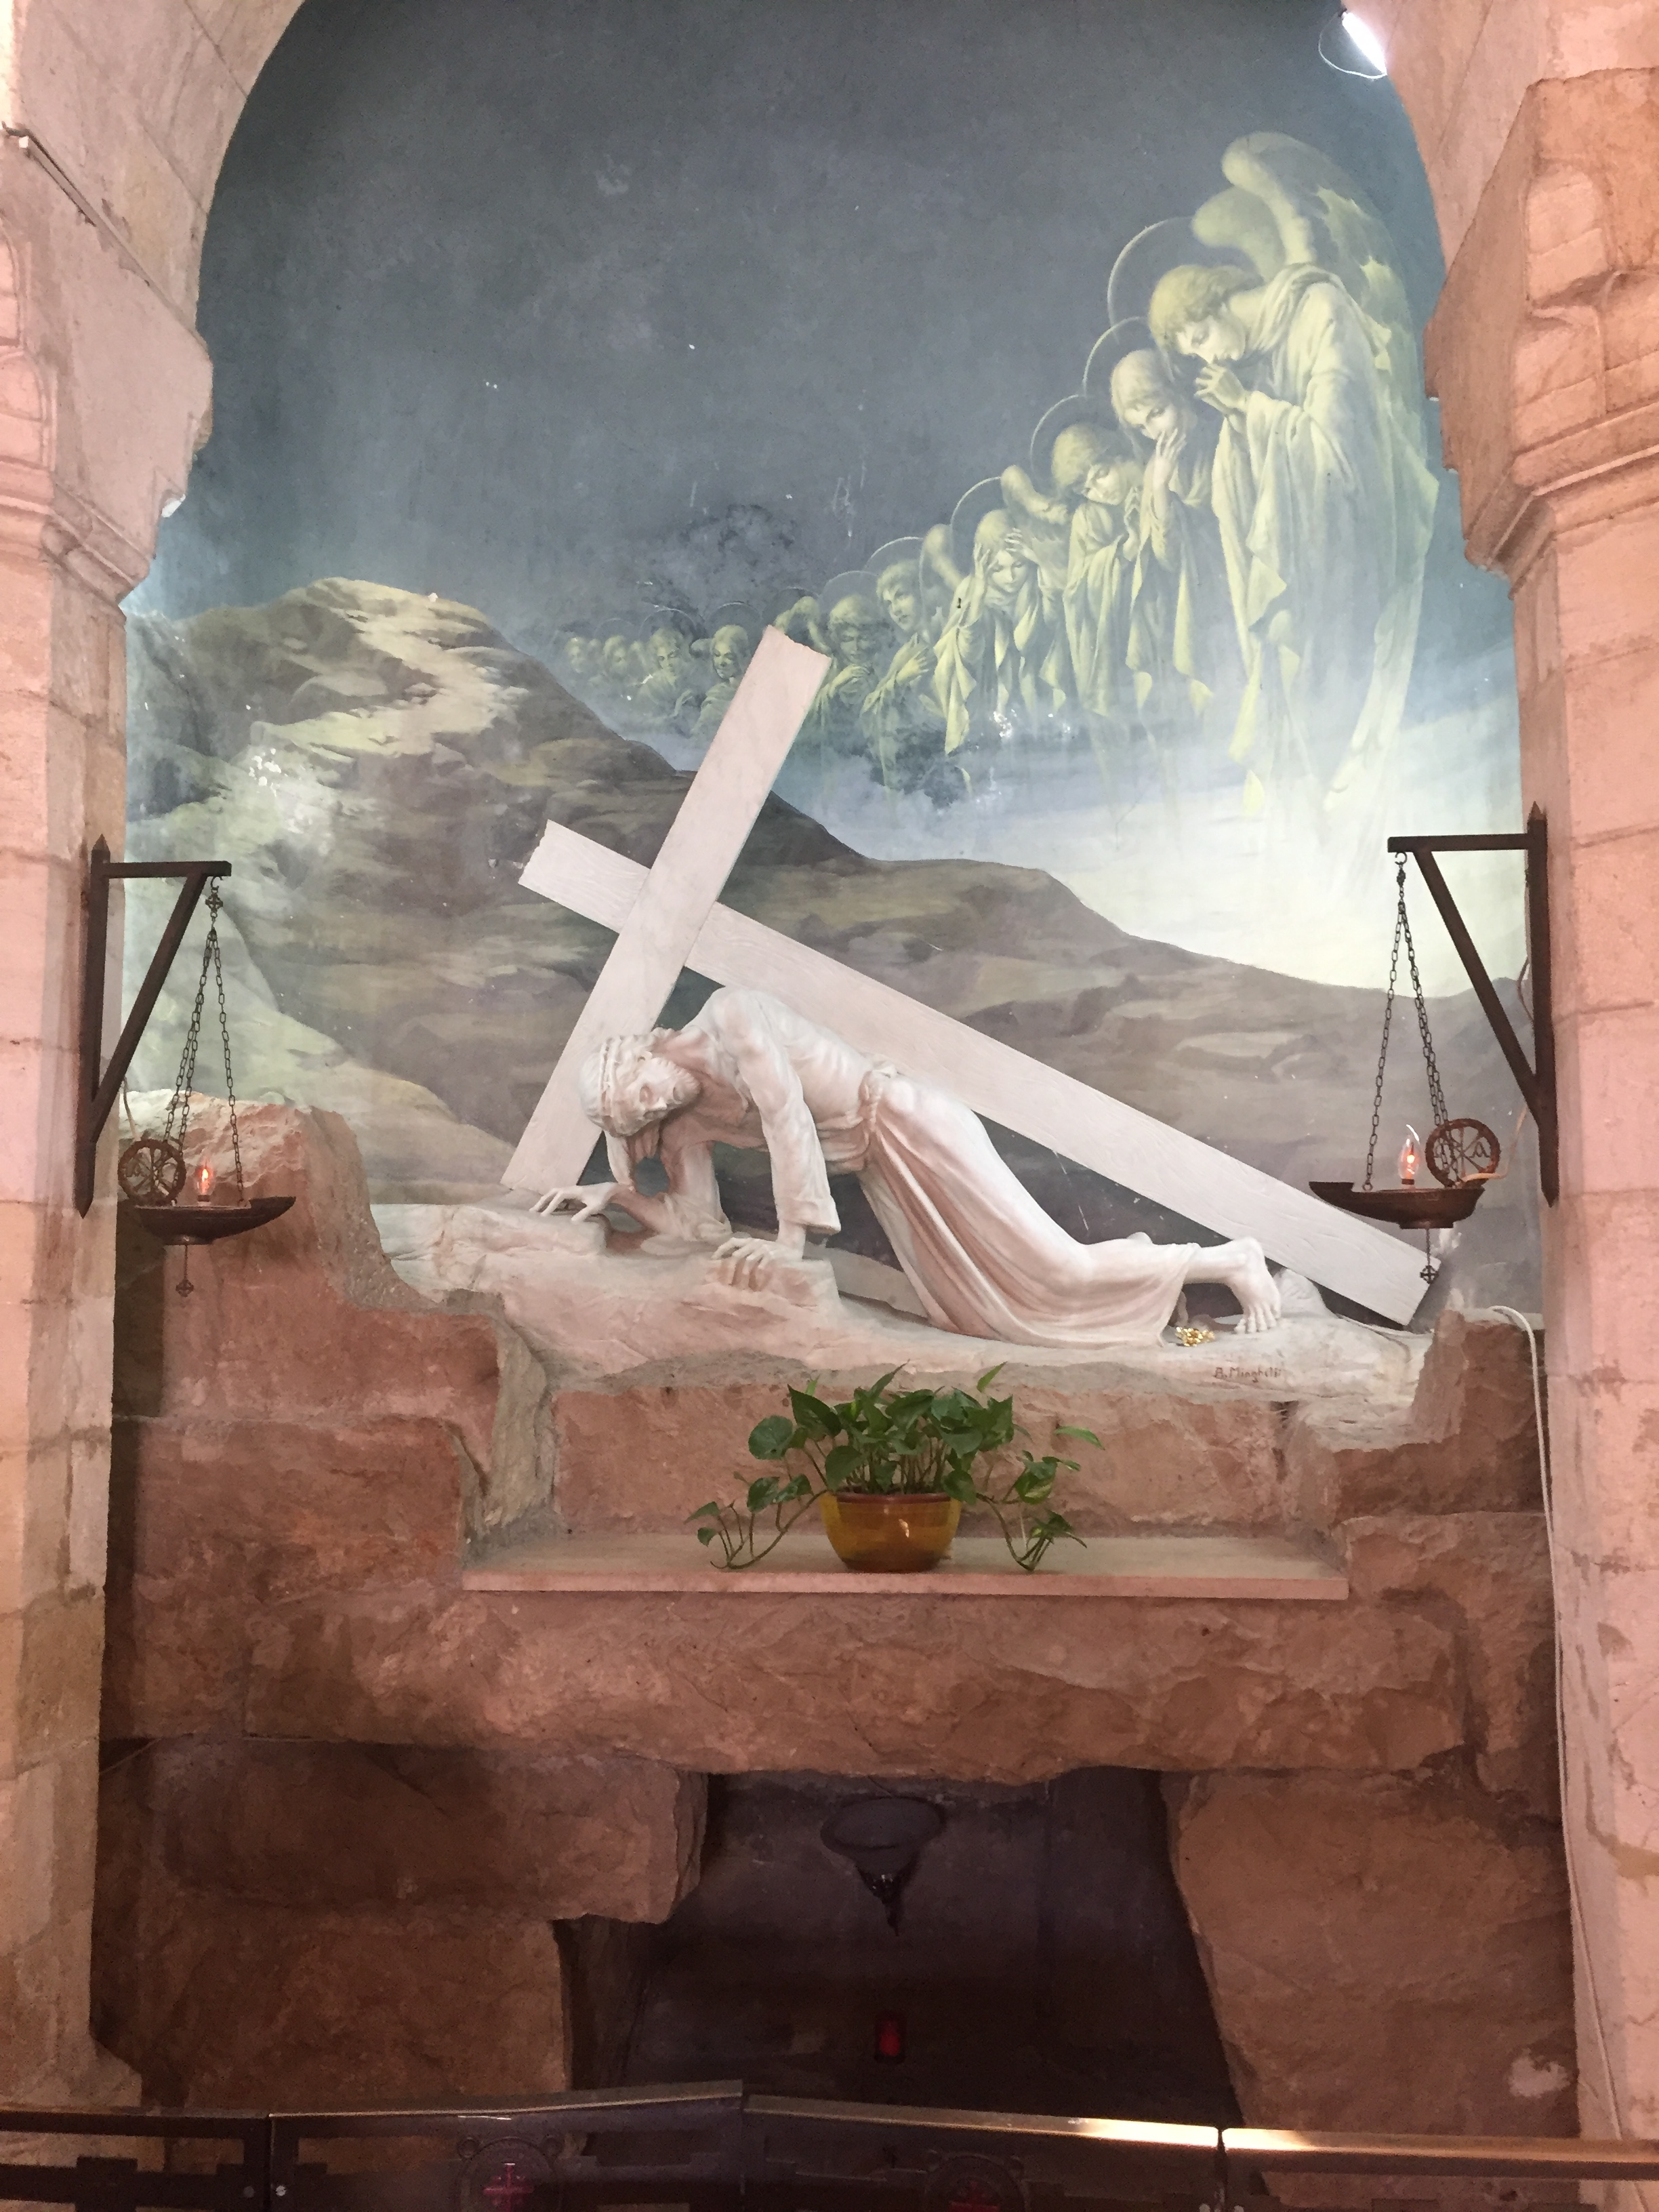 Stations of the Cross take you in the footsteps of Jesus